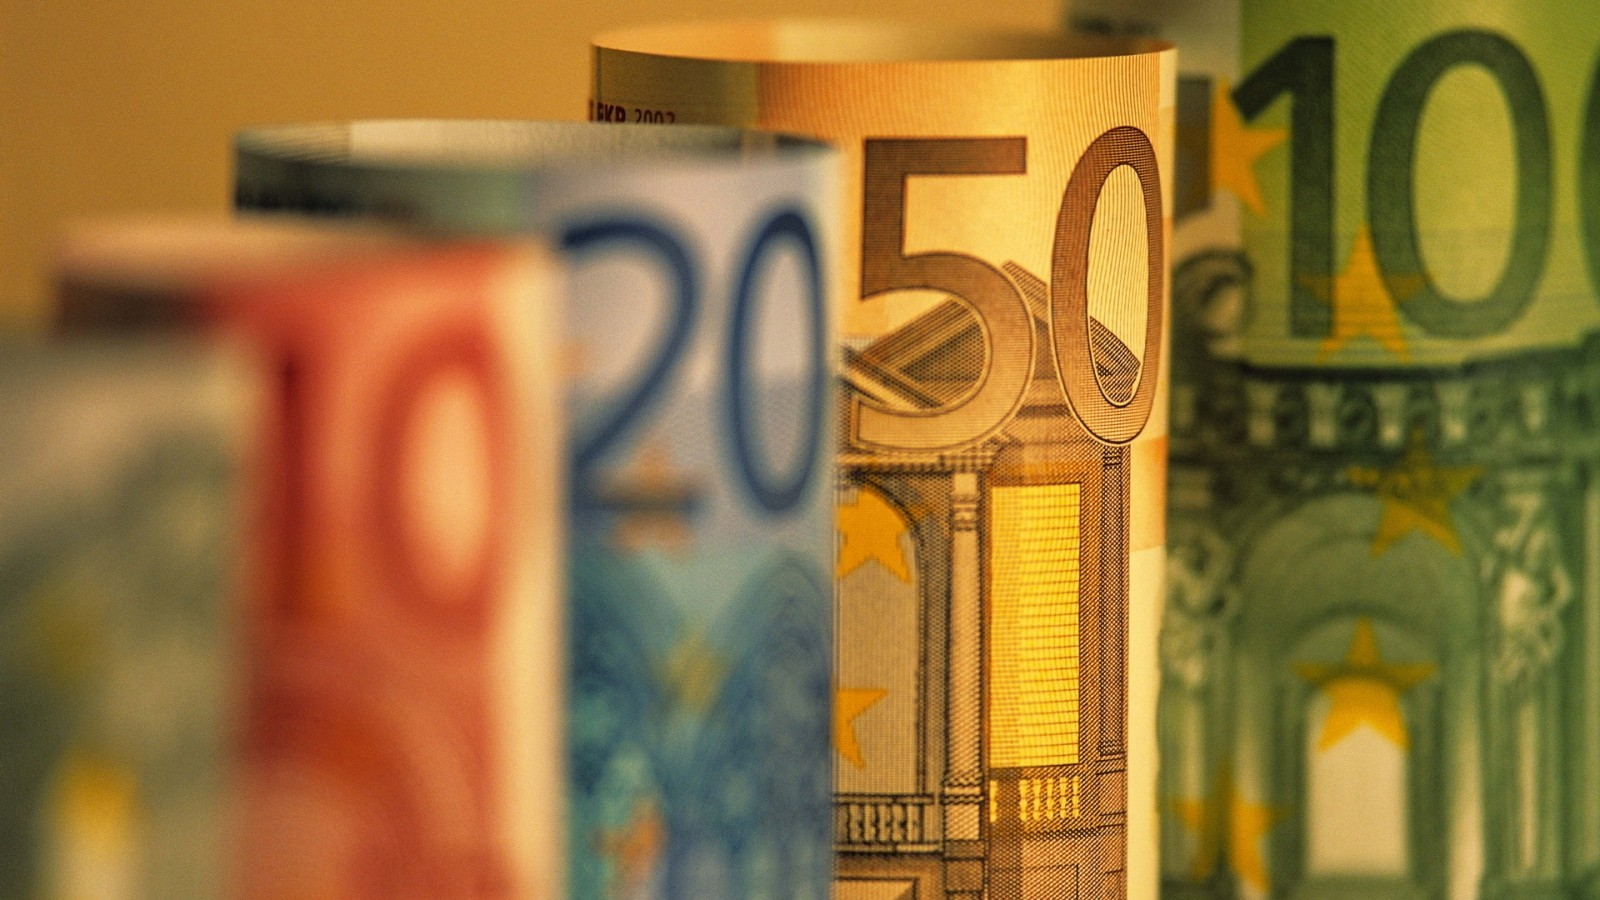 Cyprus receives 1.5 bln. euros from the ESM